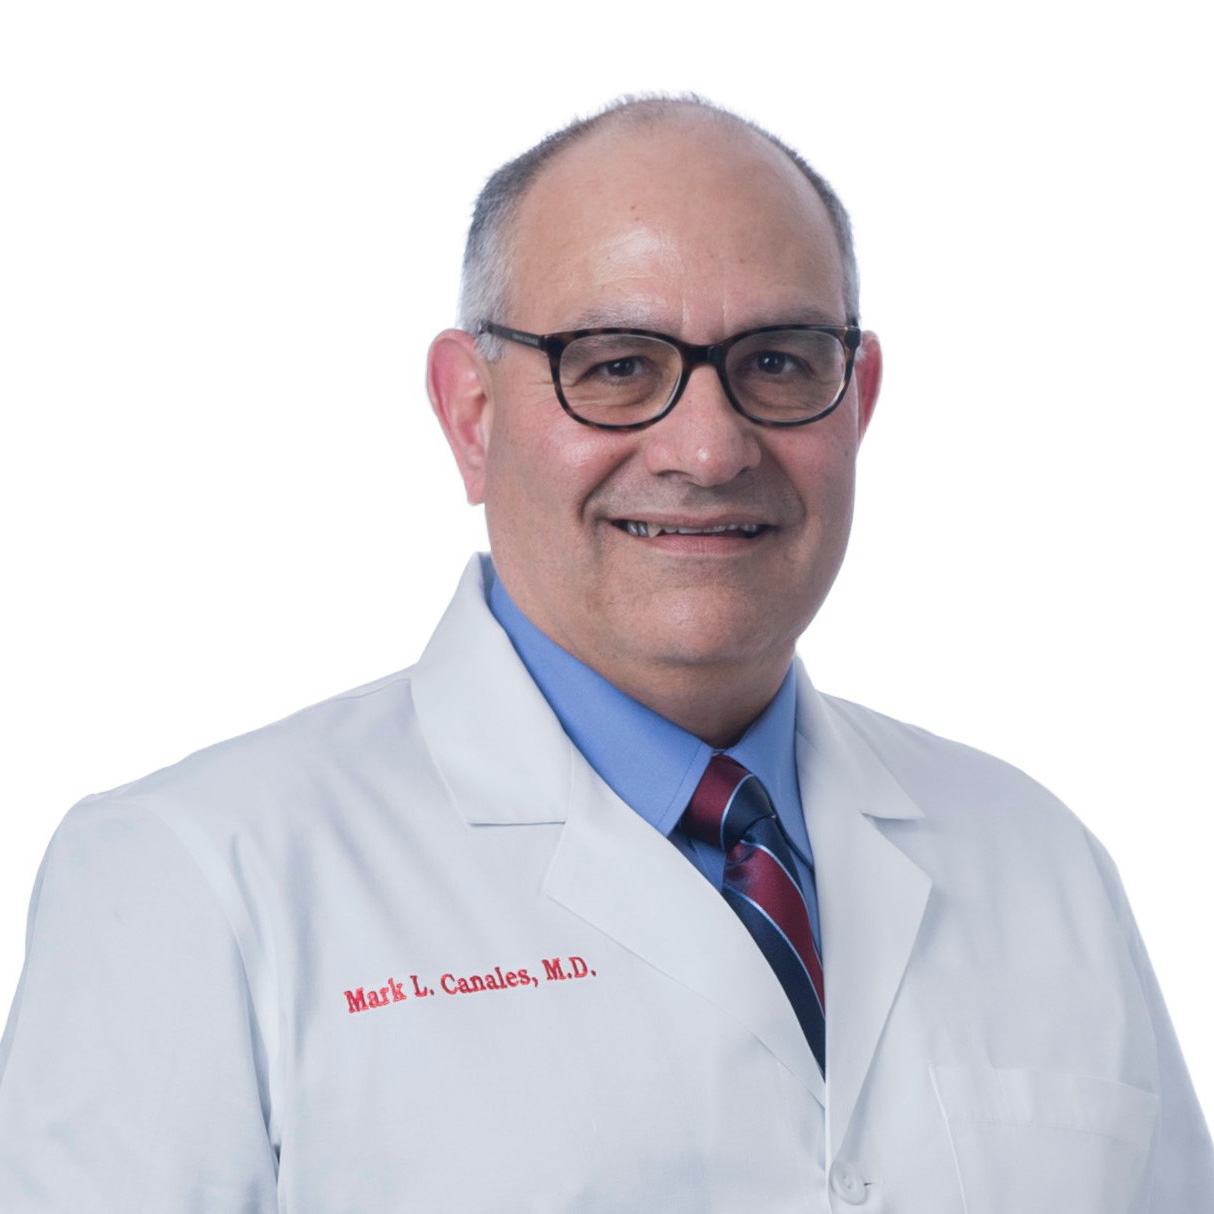 Mark Canales, MD, FACC, FSCAI